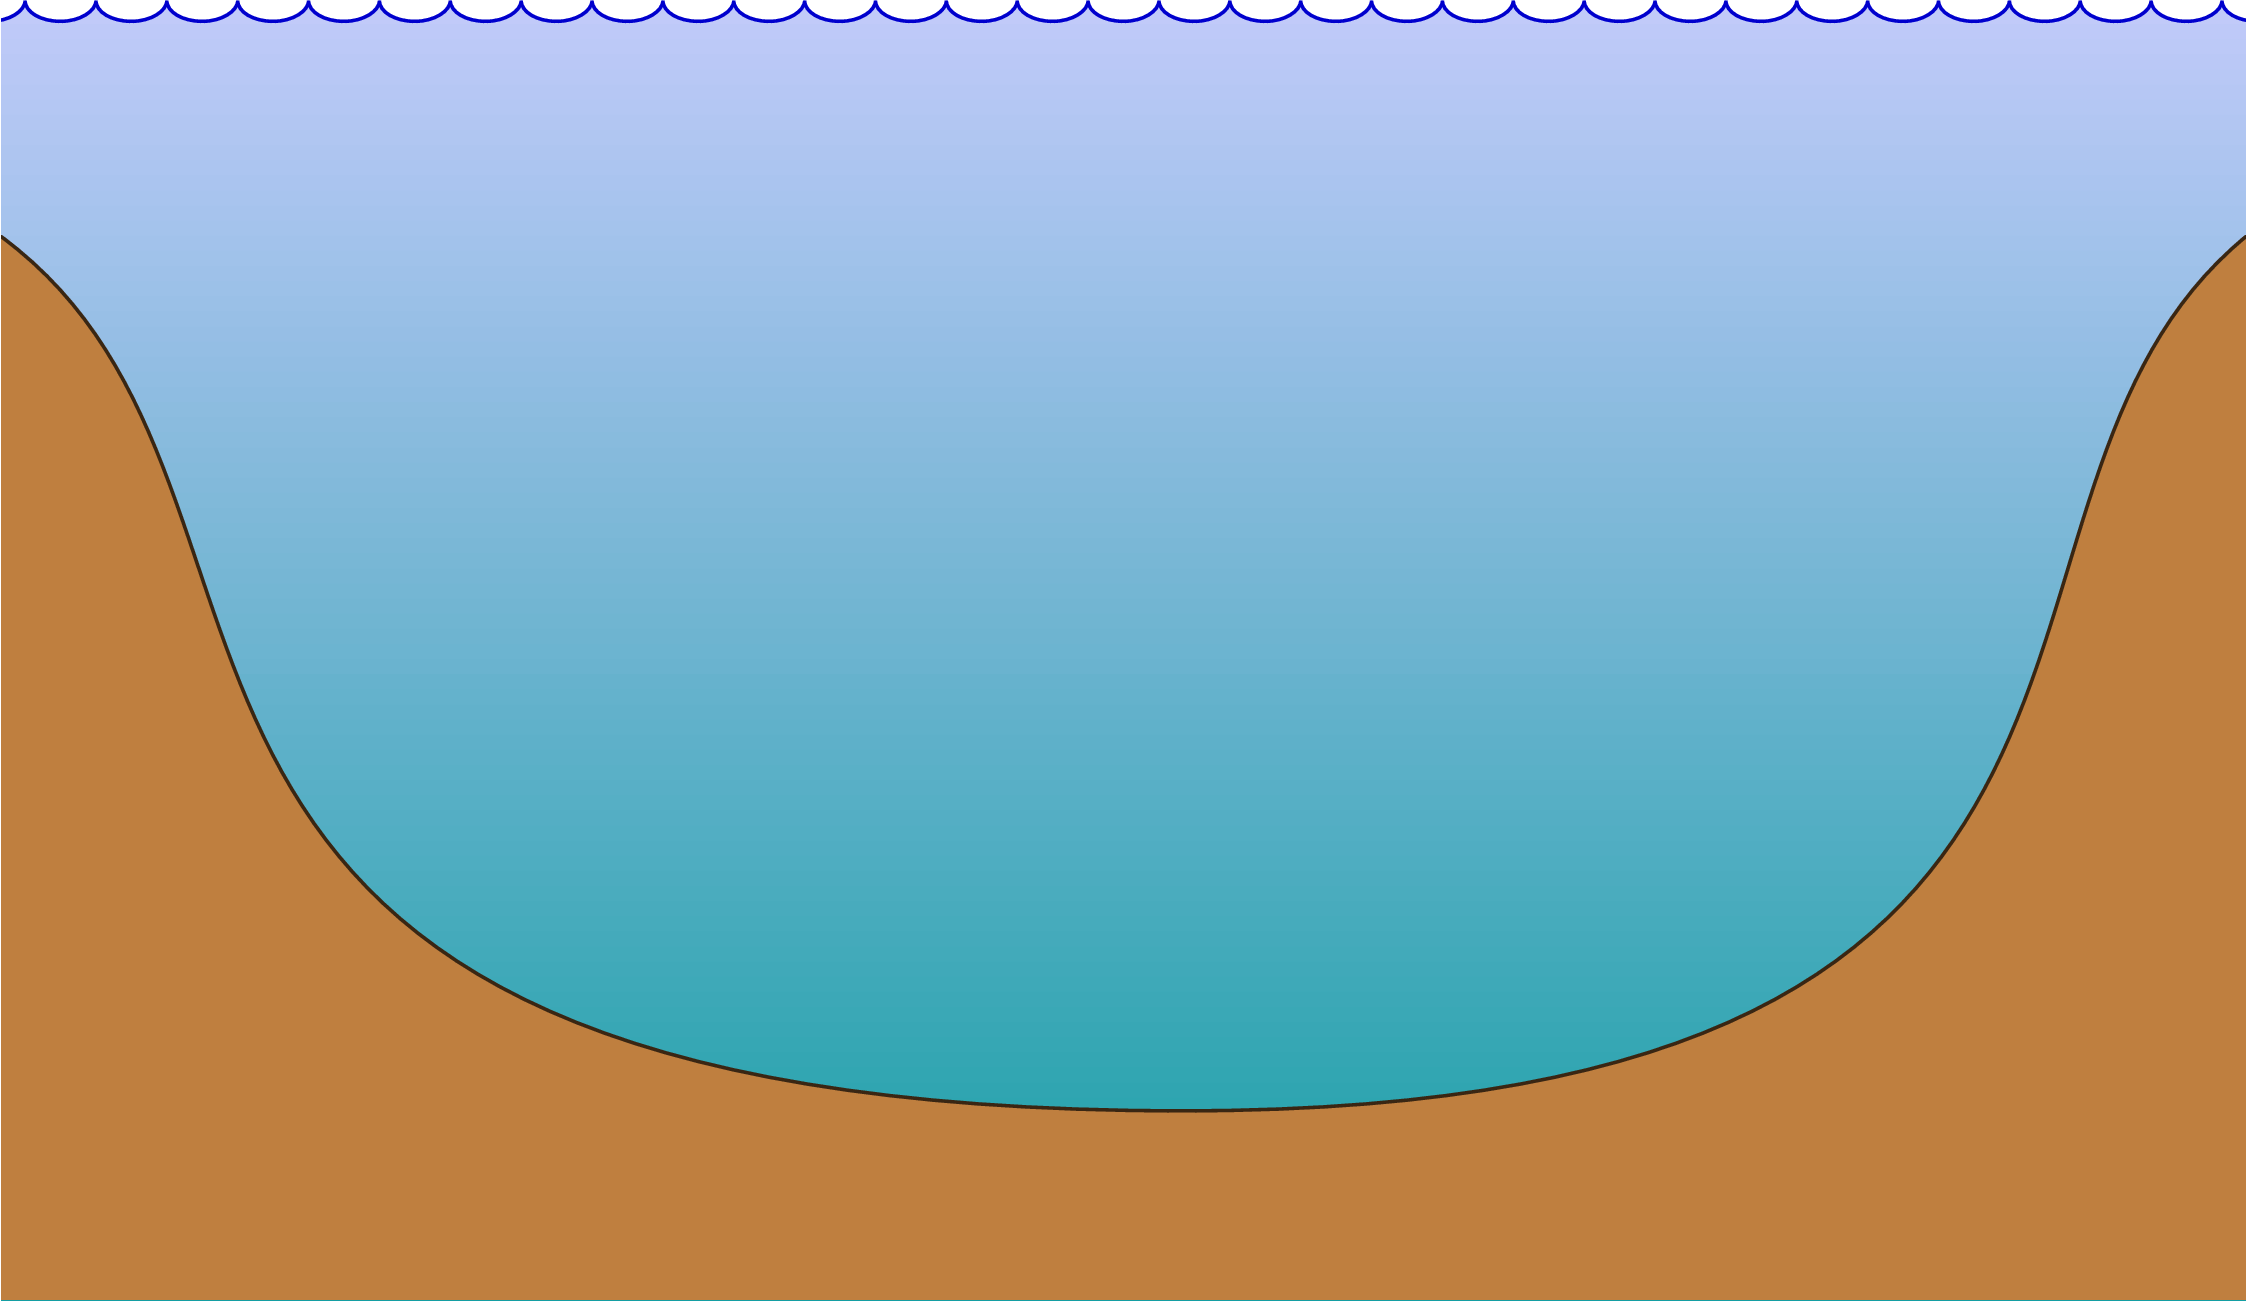 Groundwater Clipart